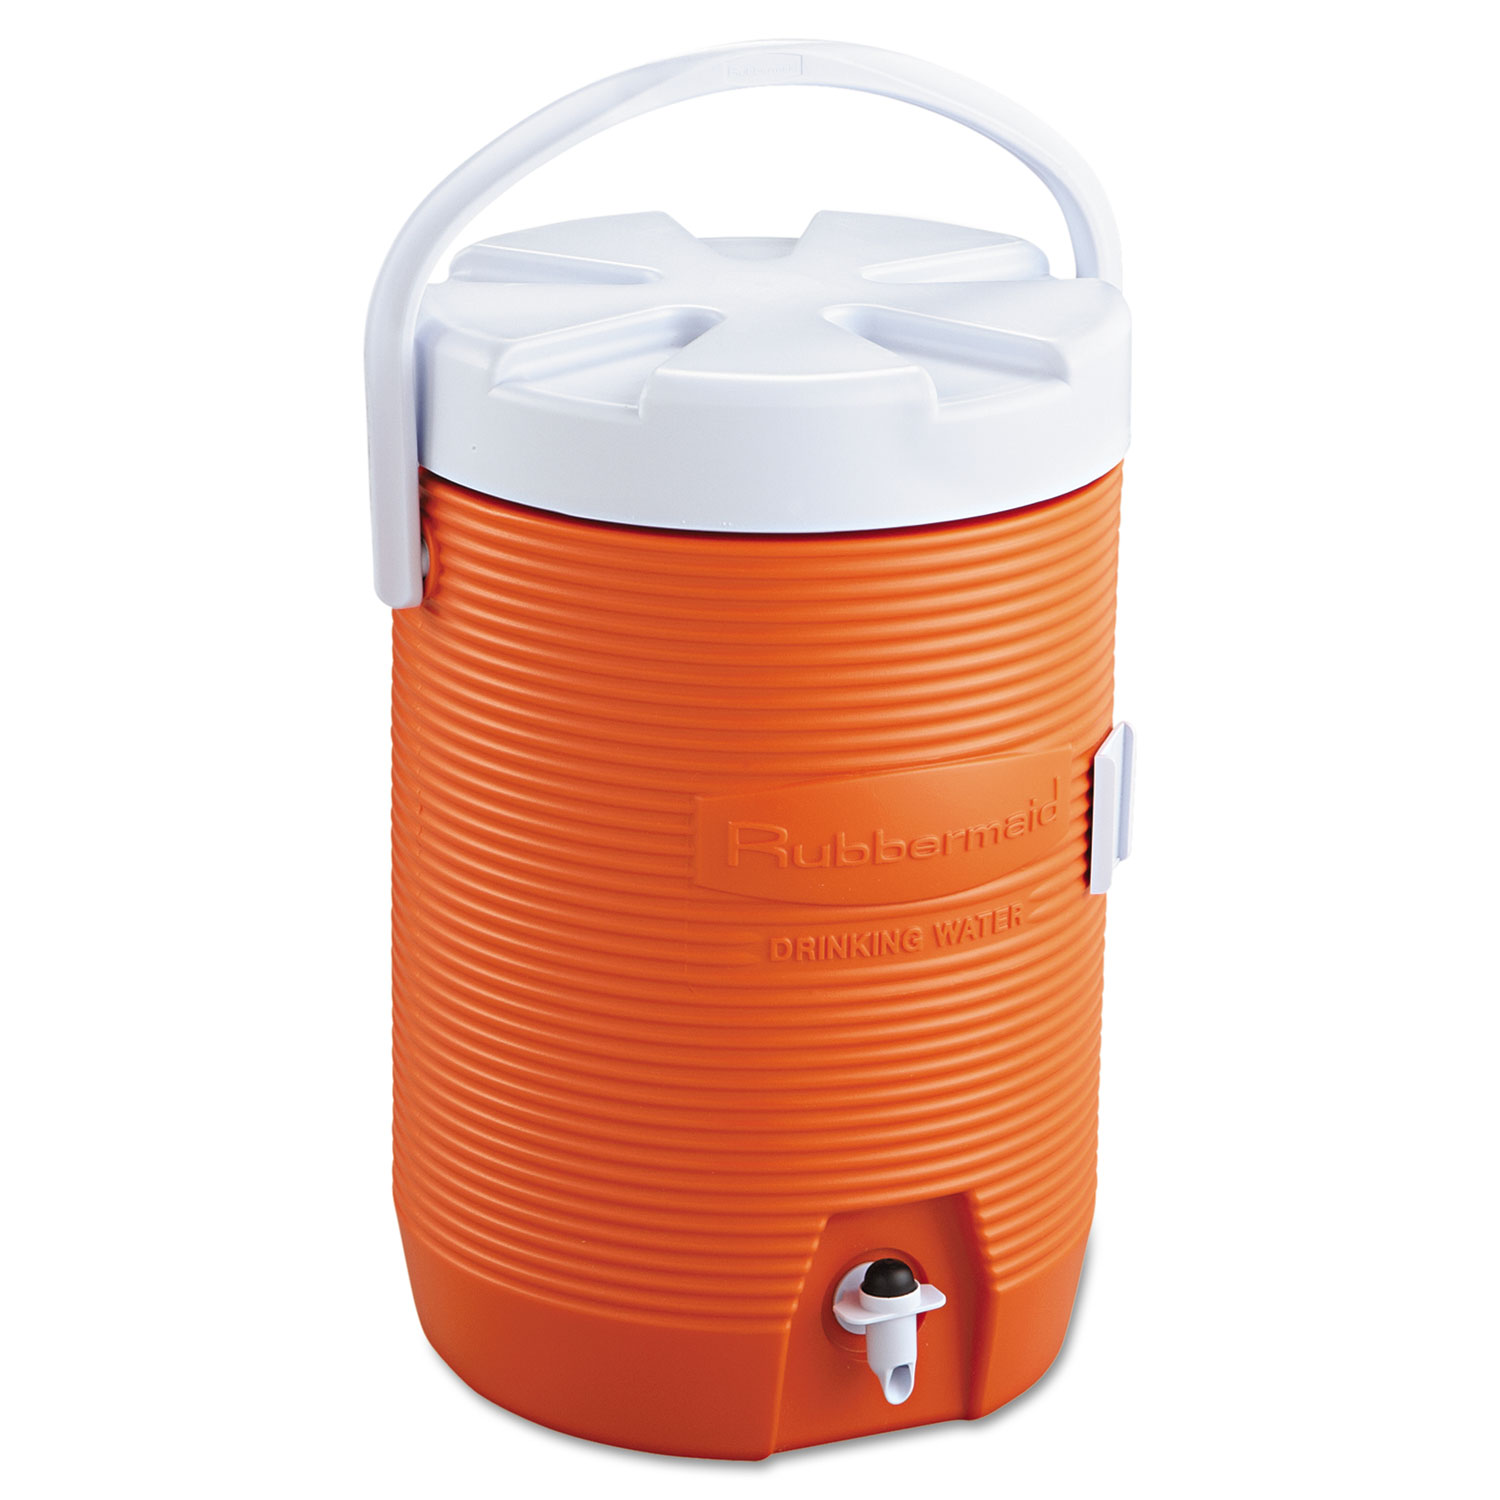 Water Cooler, 12 1/2 dia x 16 3/4h, Orange